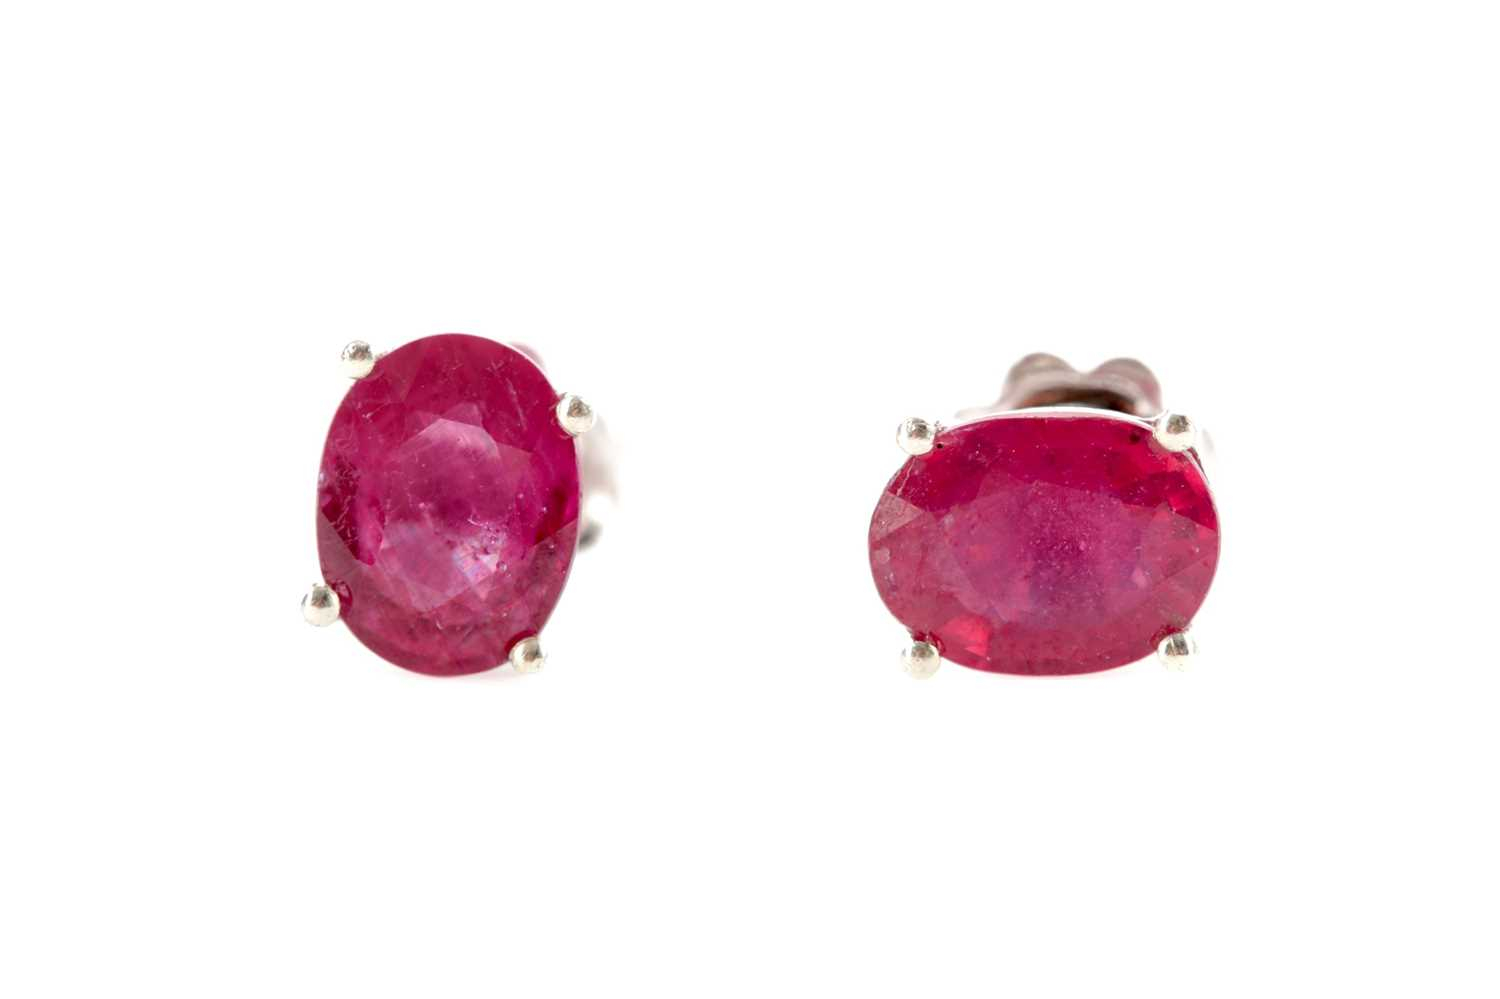 Lot 517 - A PAIR OF TREATED RUBY EARRINGS